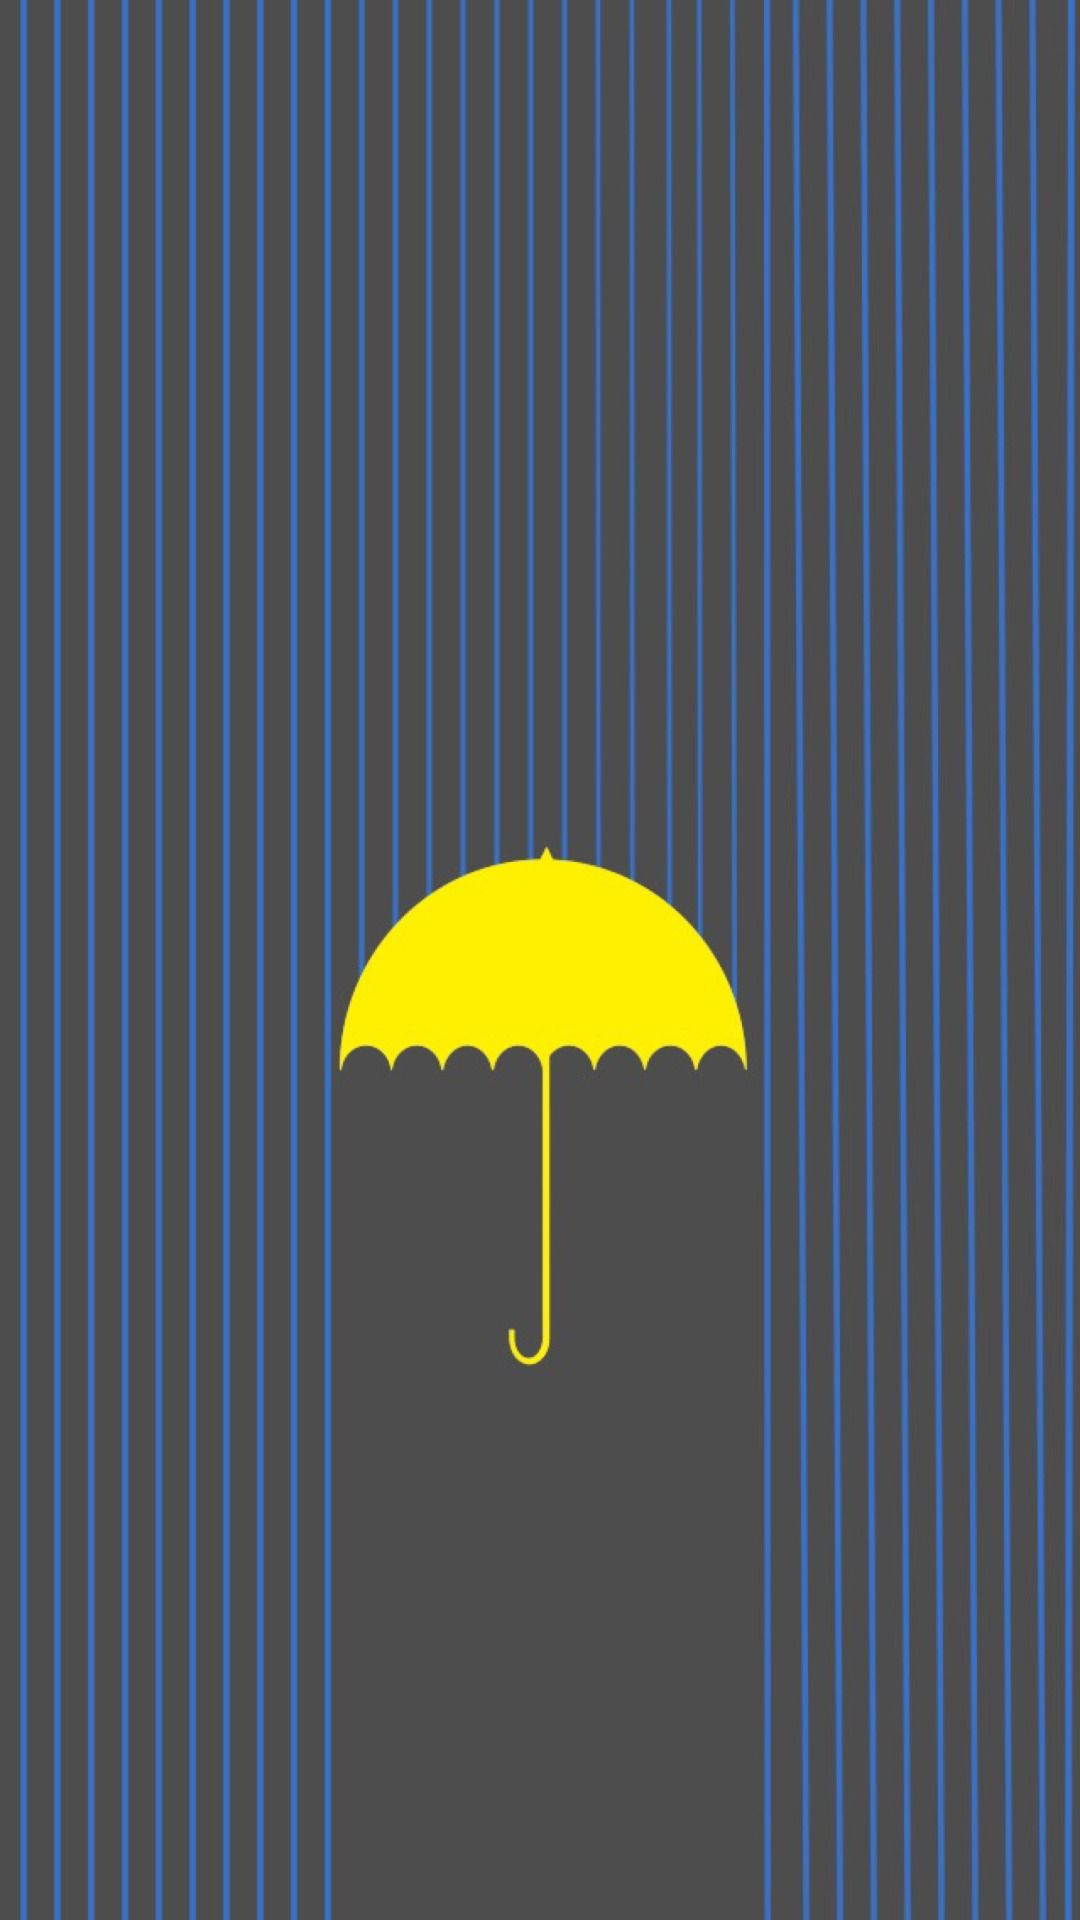 How I Met Your Mother Wallpaper Tumblr Guarda Chuva Amarelo